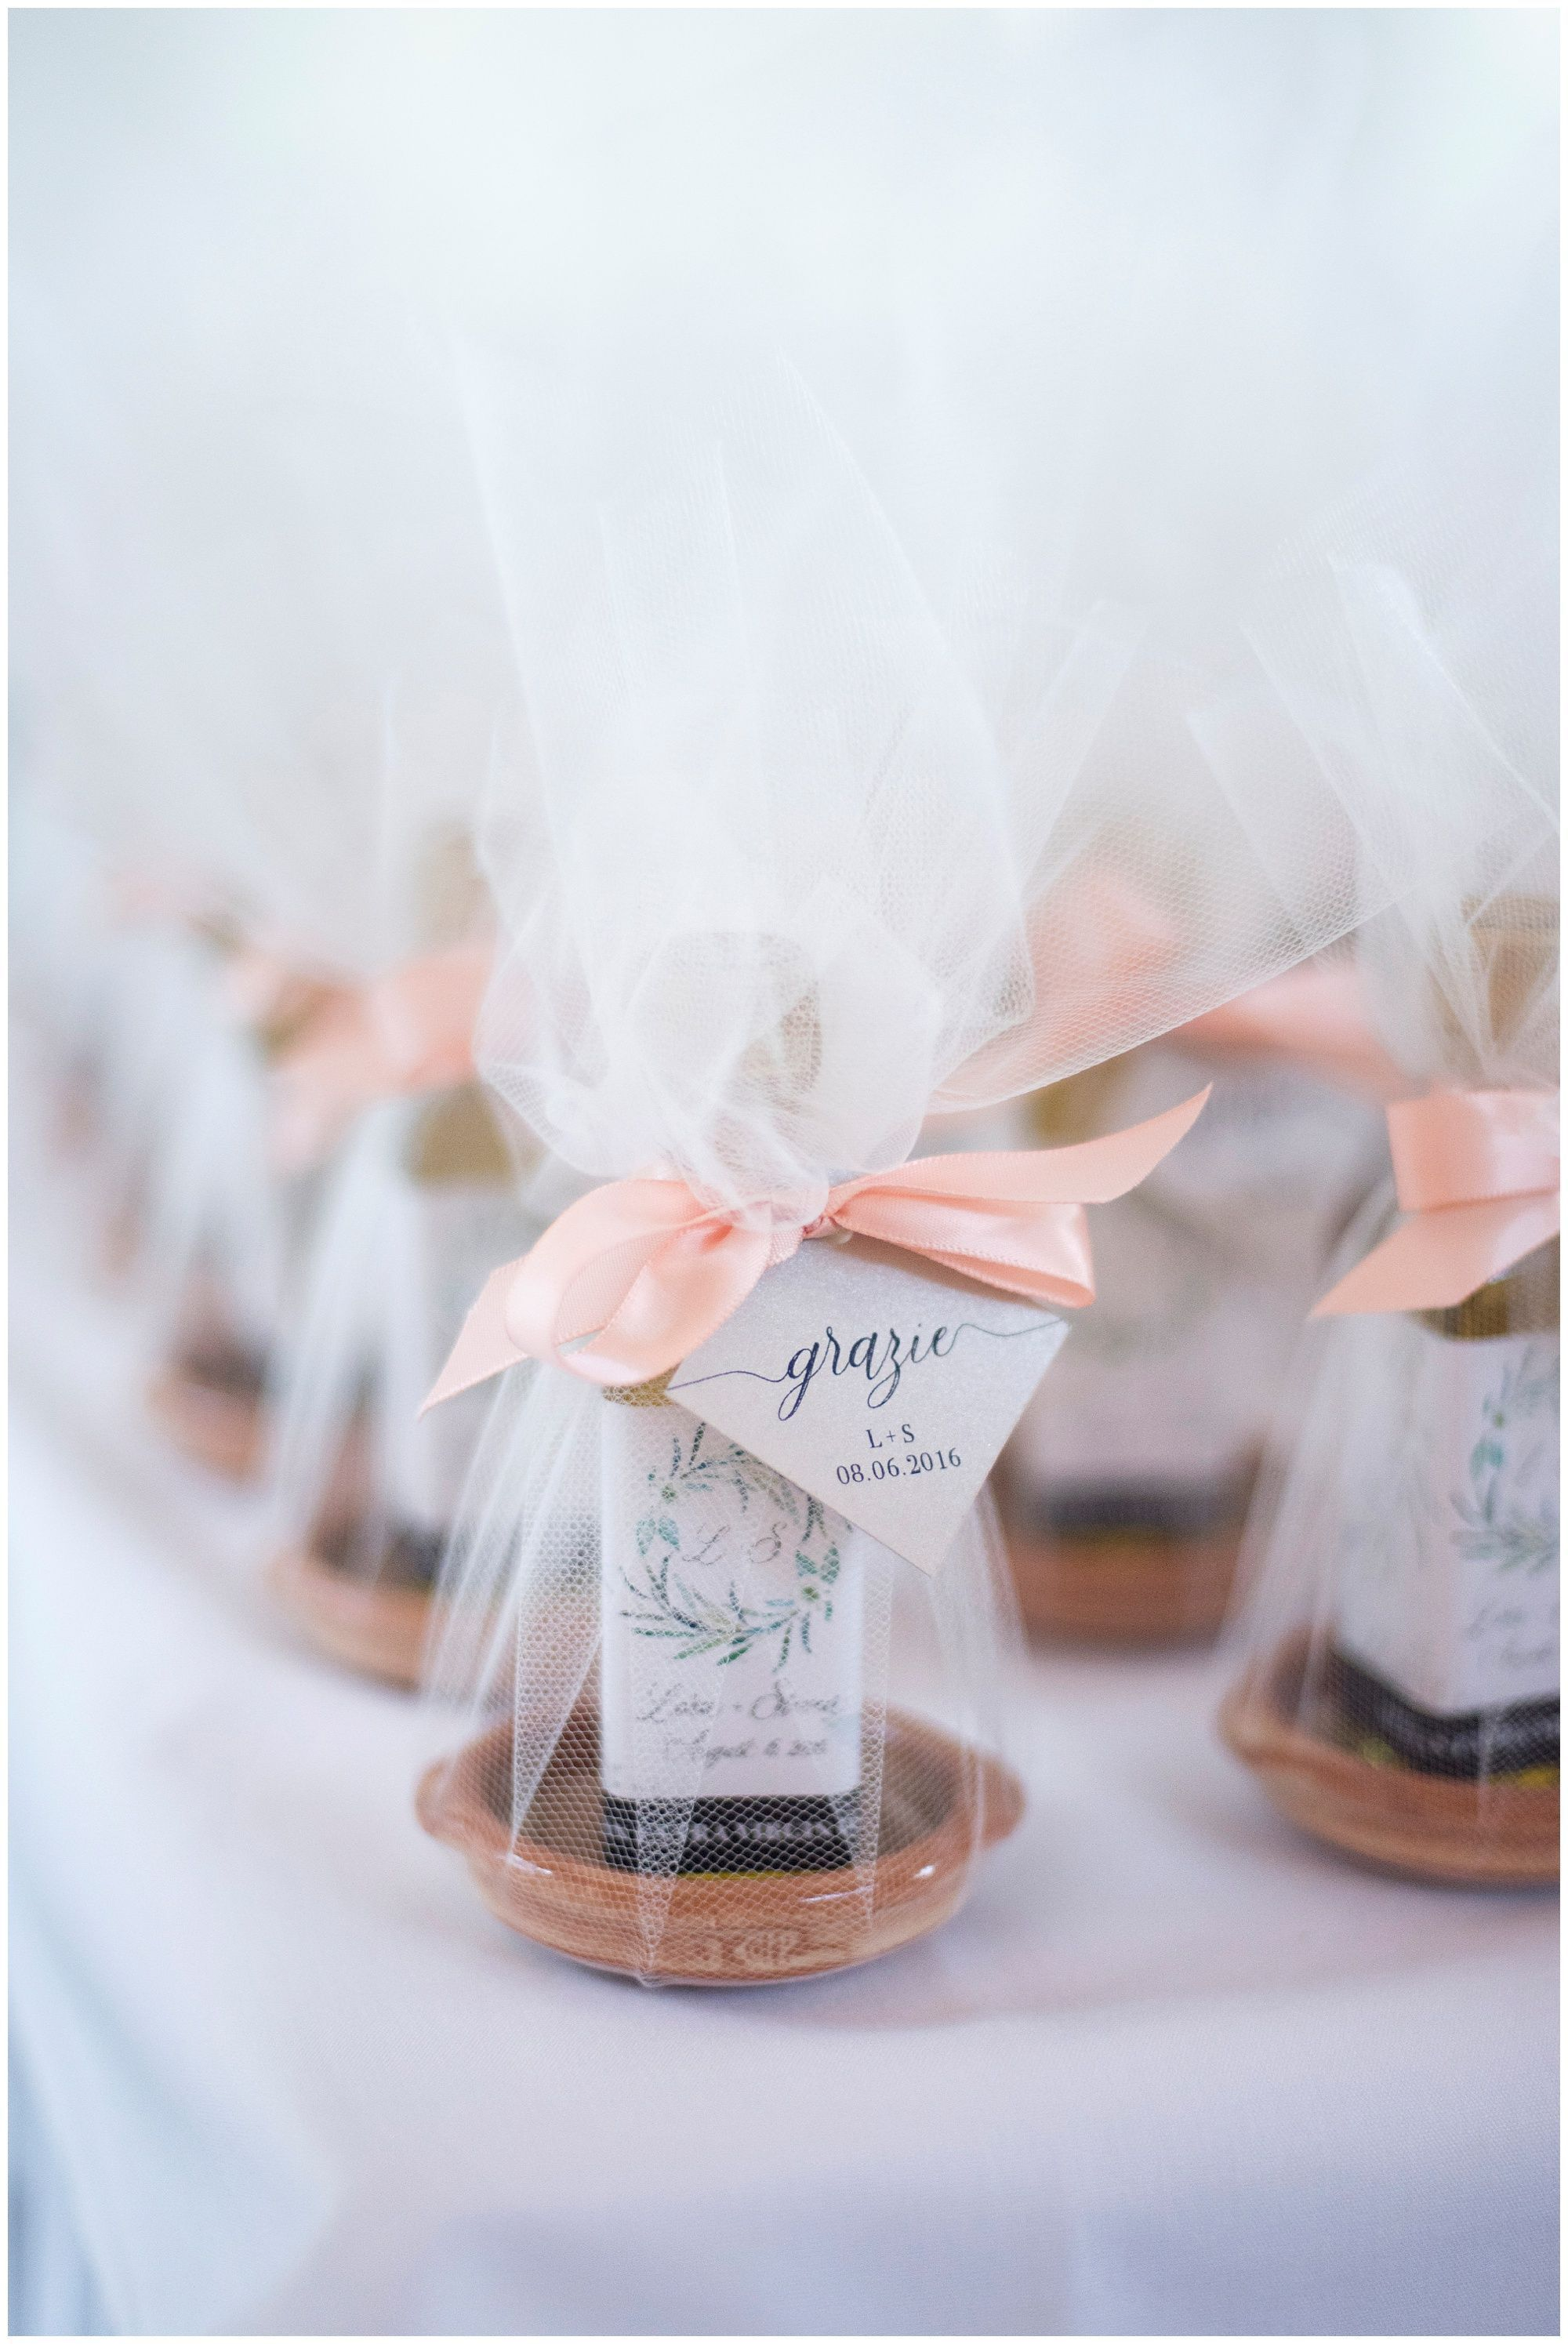 The Best Wedding Favor From An Italian Couple Olive Oil With A Small Dipping Dish Wrapped In Homemade Wedding Favors Wedding Gift Favors Best Wedding Favors